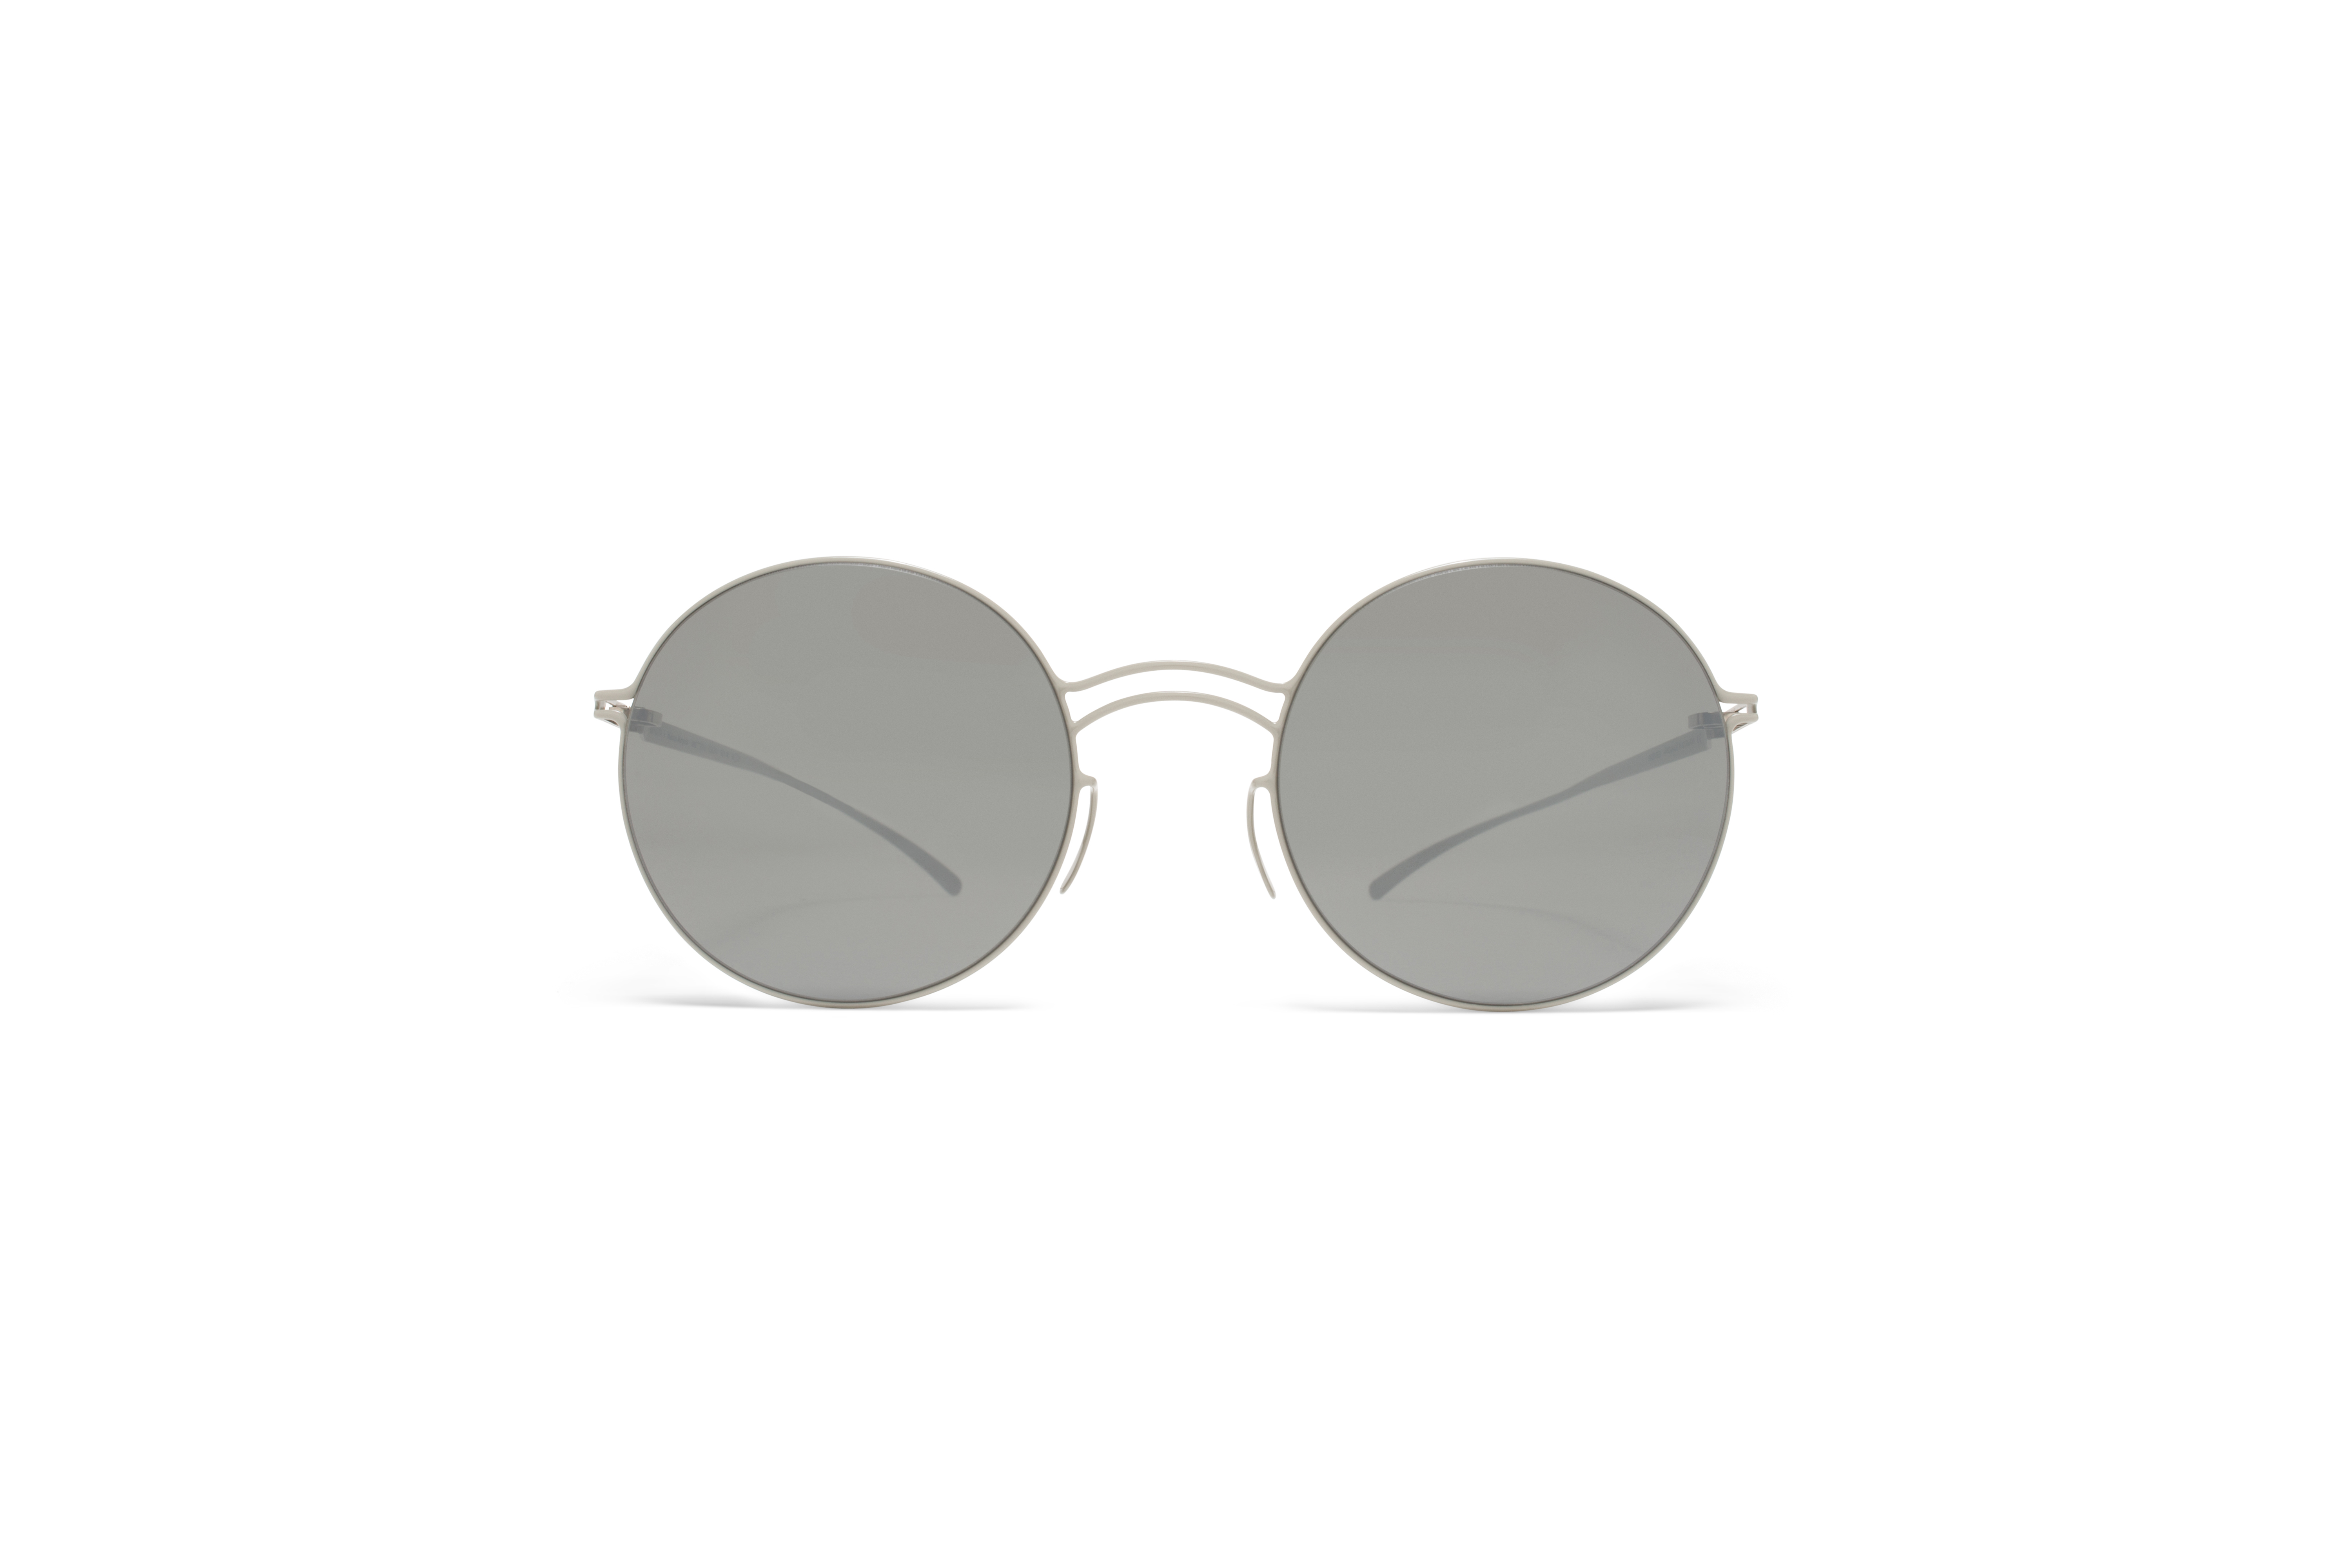 MYKITA Mm Sun Mmesse013 E11 Lightgrey Mirror Bla58fe25b916fee